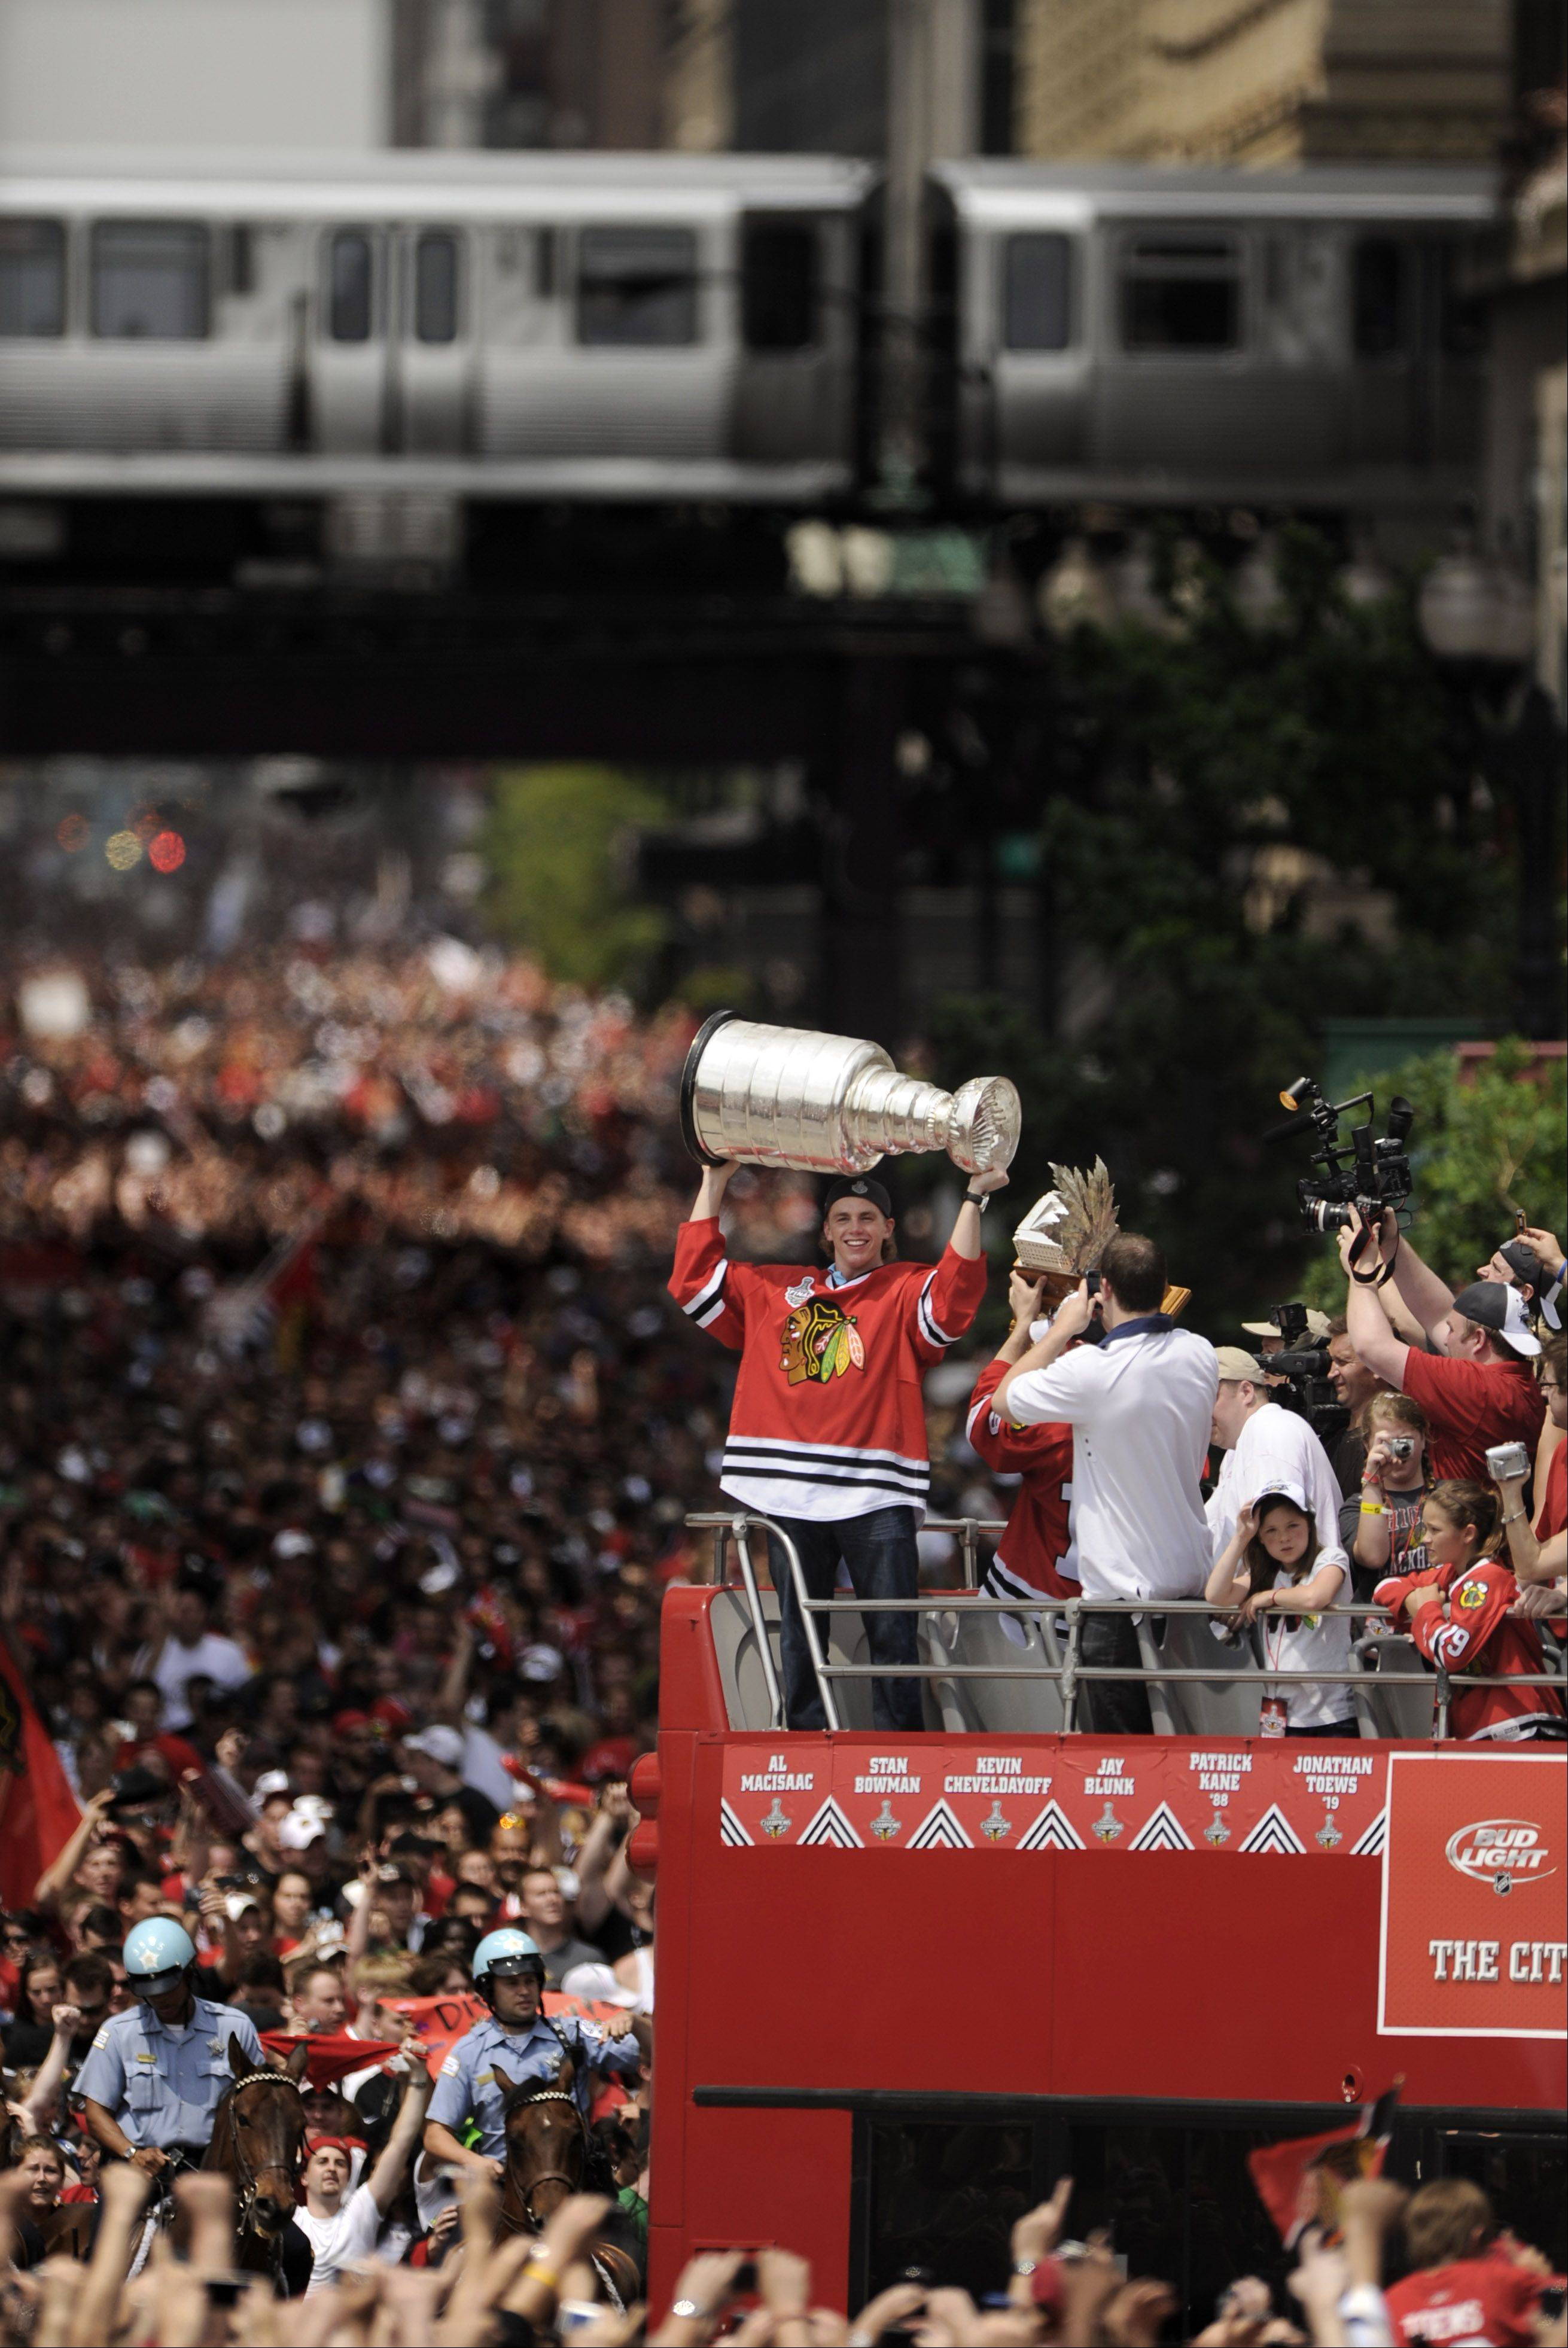 The Chicago Blackhawks� Patrick Kane hoists the Stanley Cup while celebrating with fans during a parade on Washington Street after the team�s cup win in 2010.